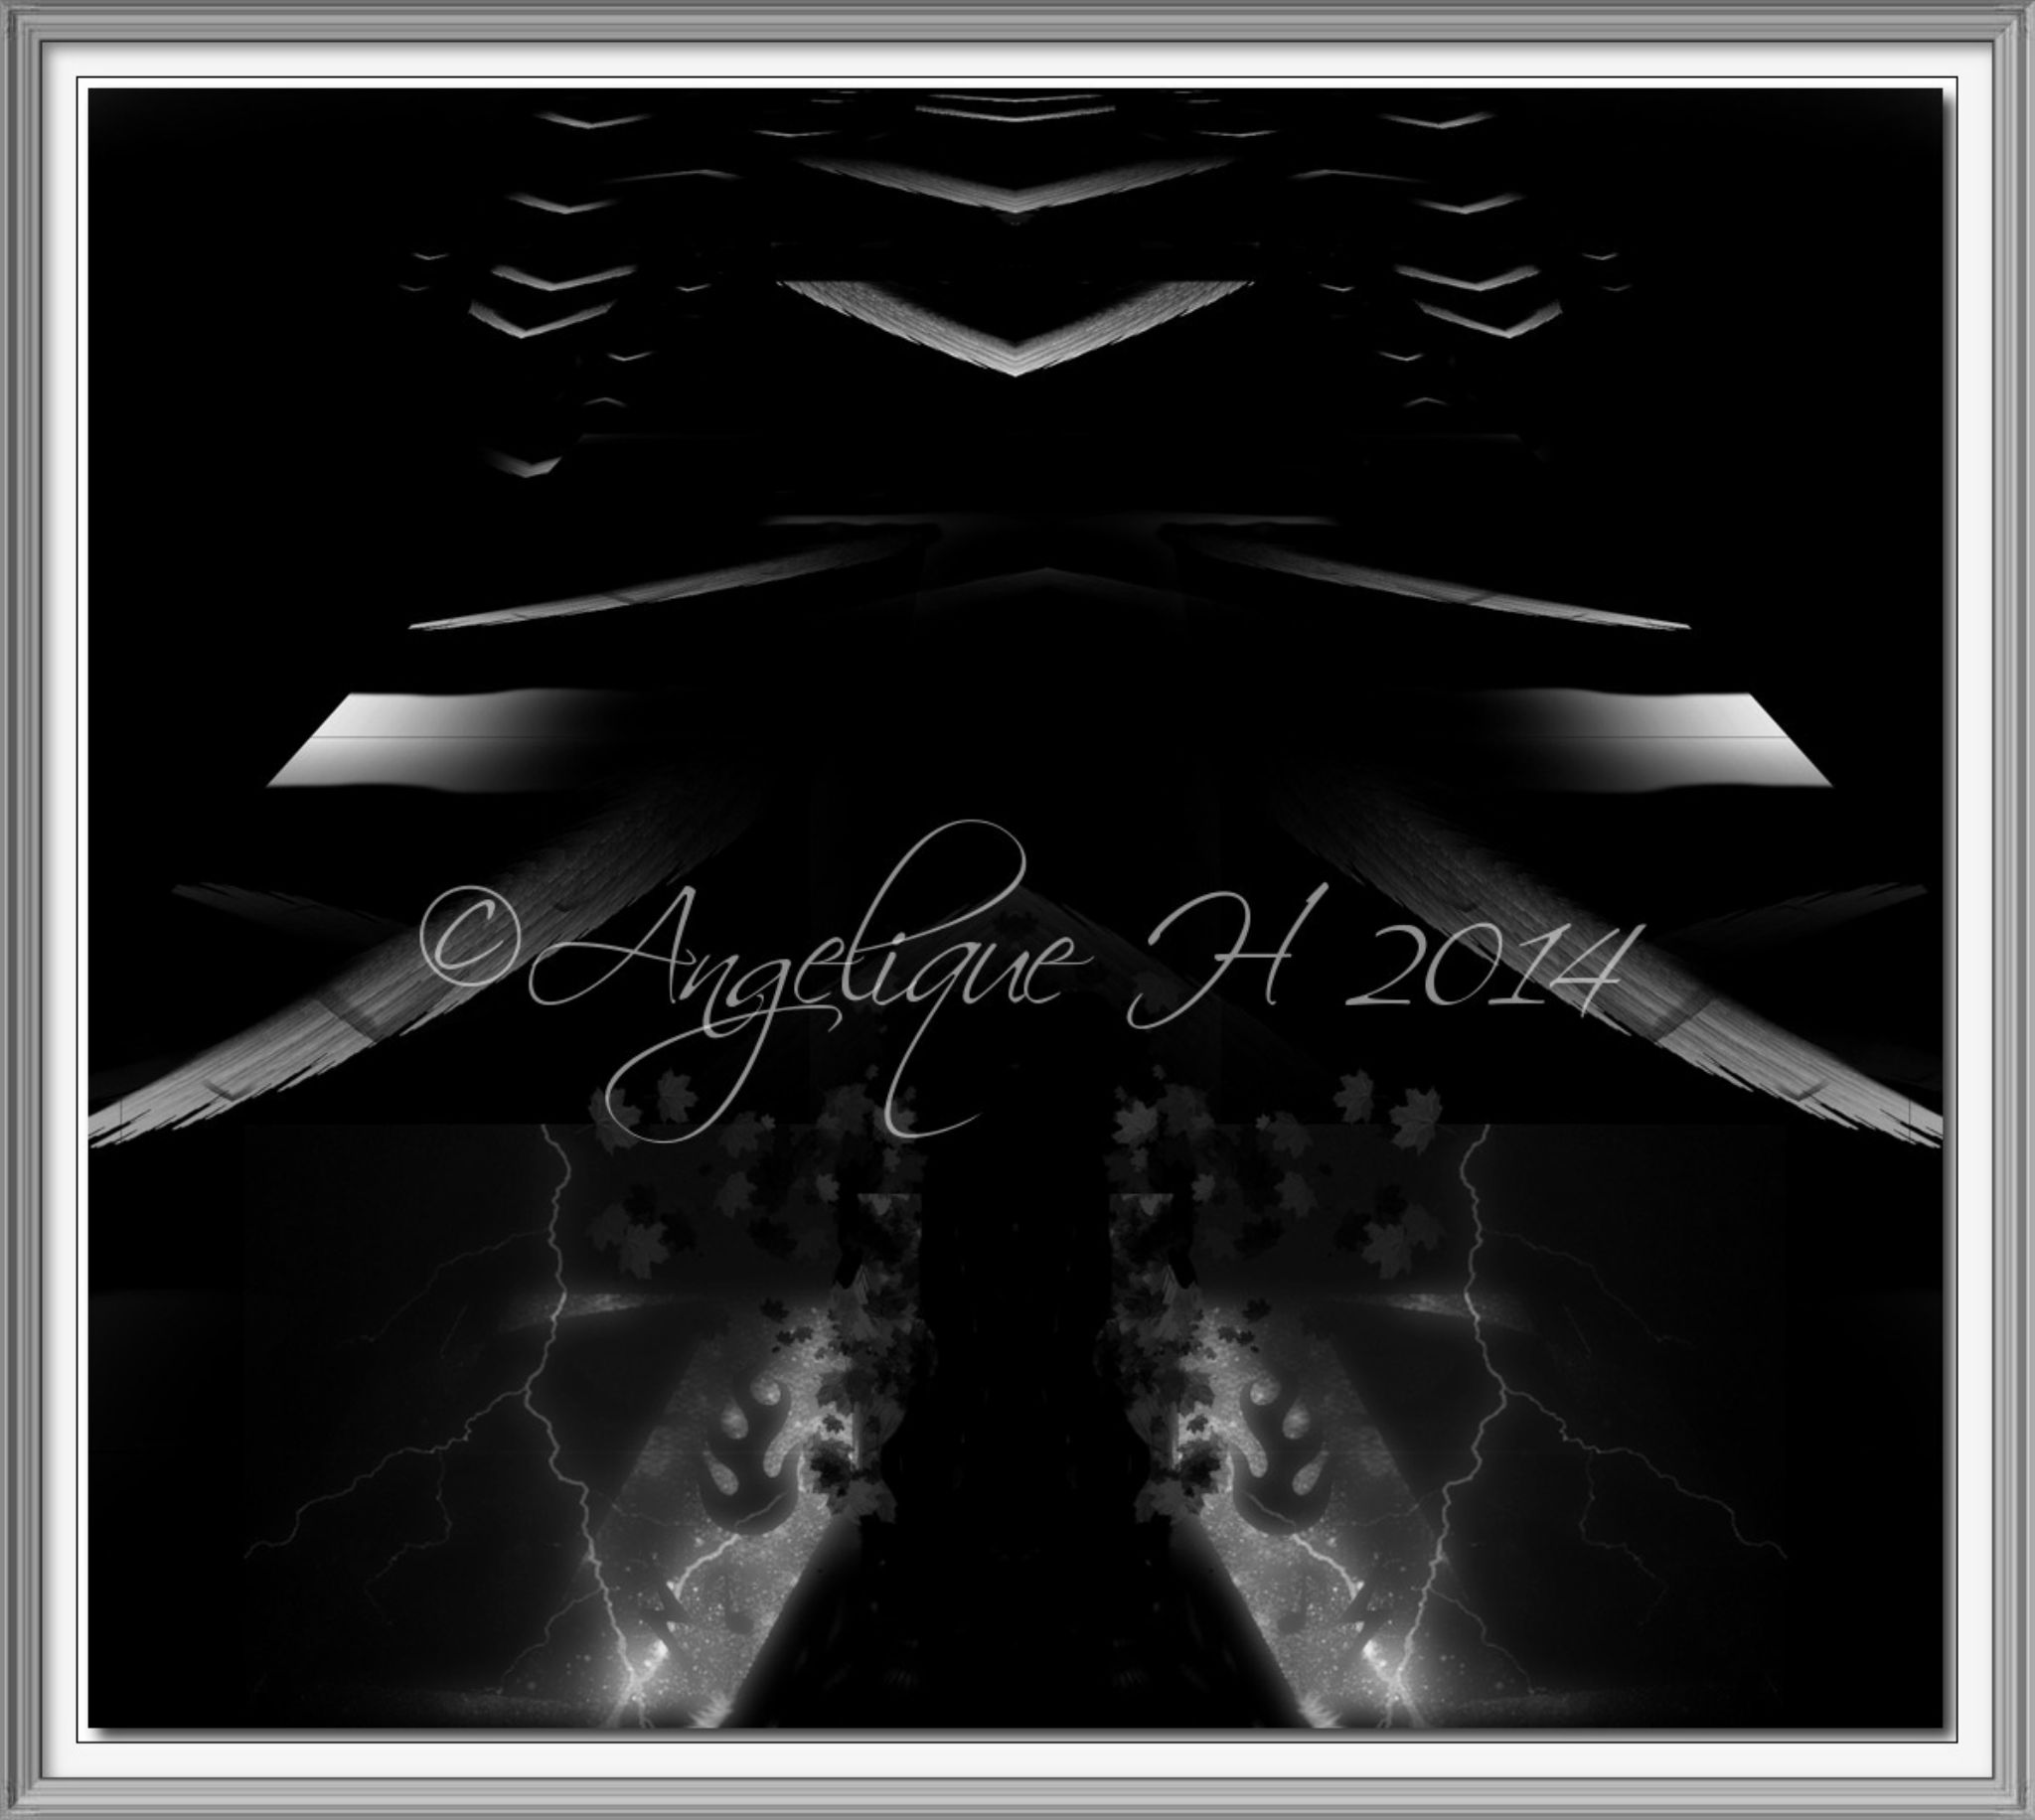 Framed,Sunglasses Creation-3d view (4) shadowed, detailed,,3d view wing fractal fan,(8)( my own wing by AngeliqueH